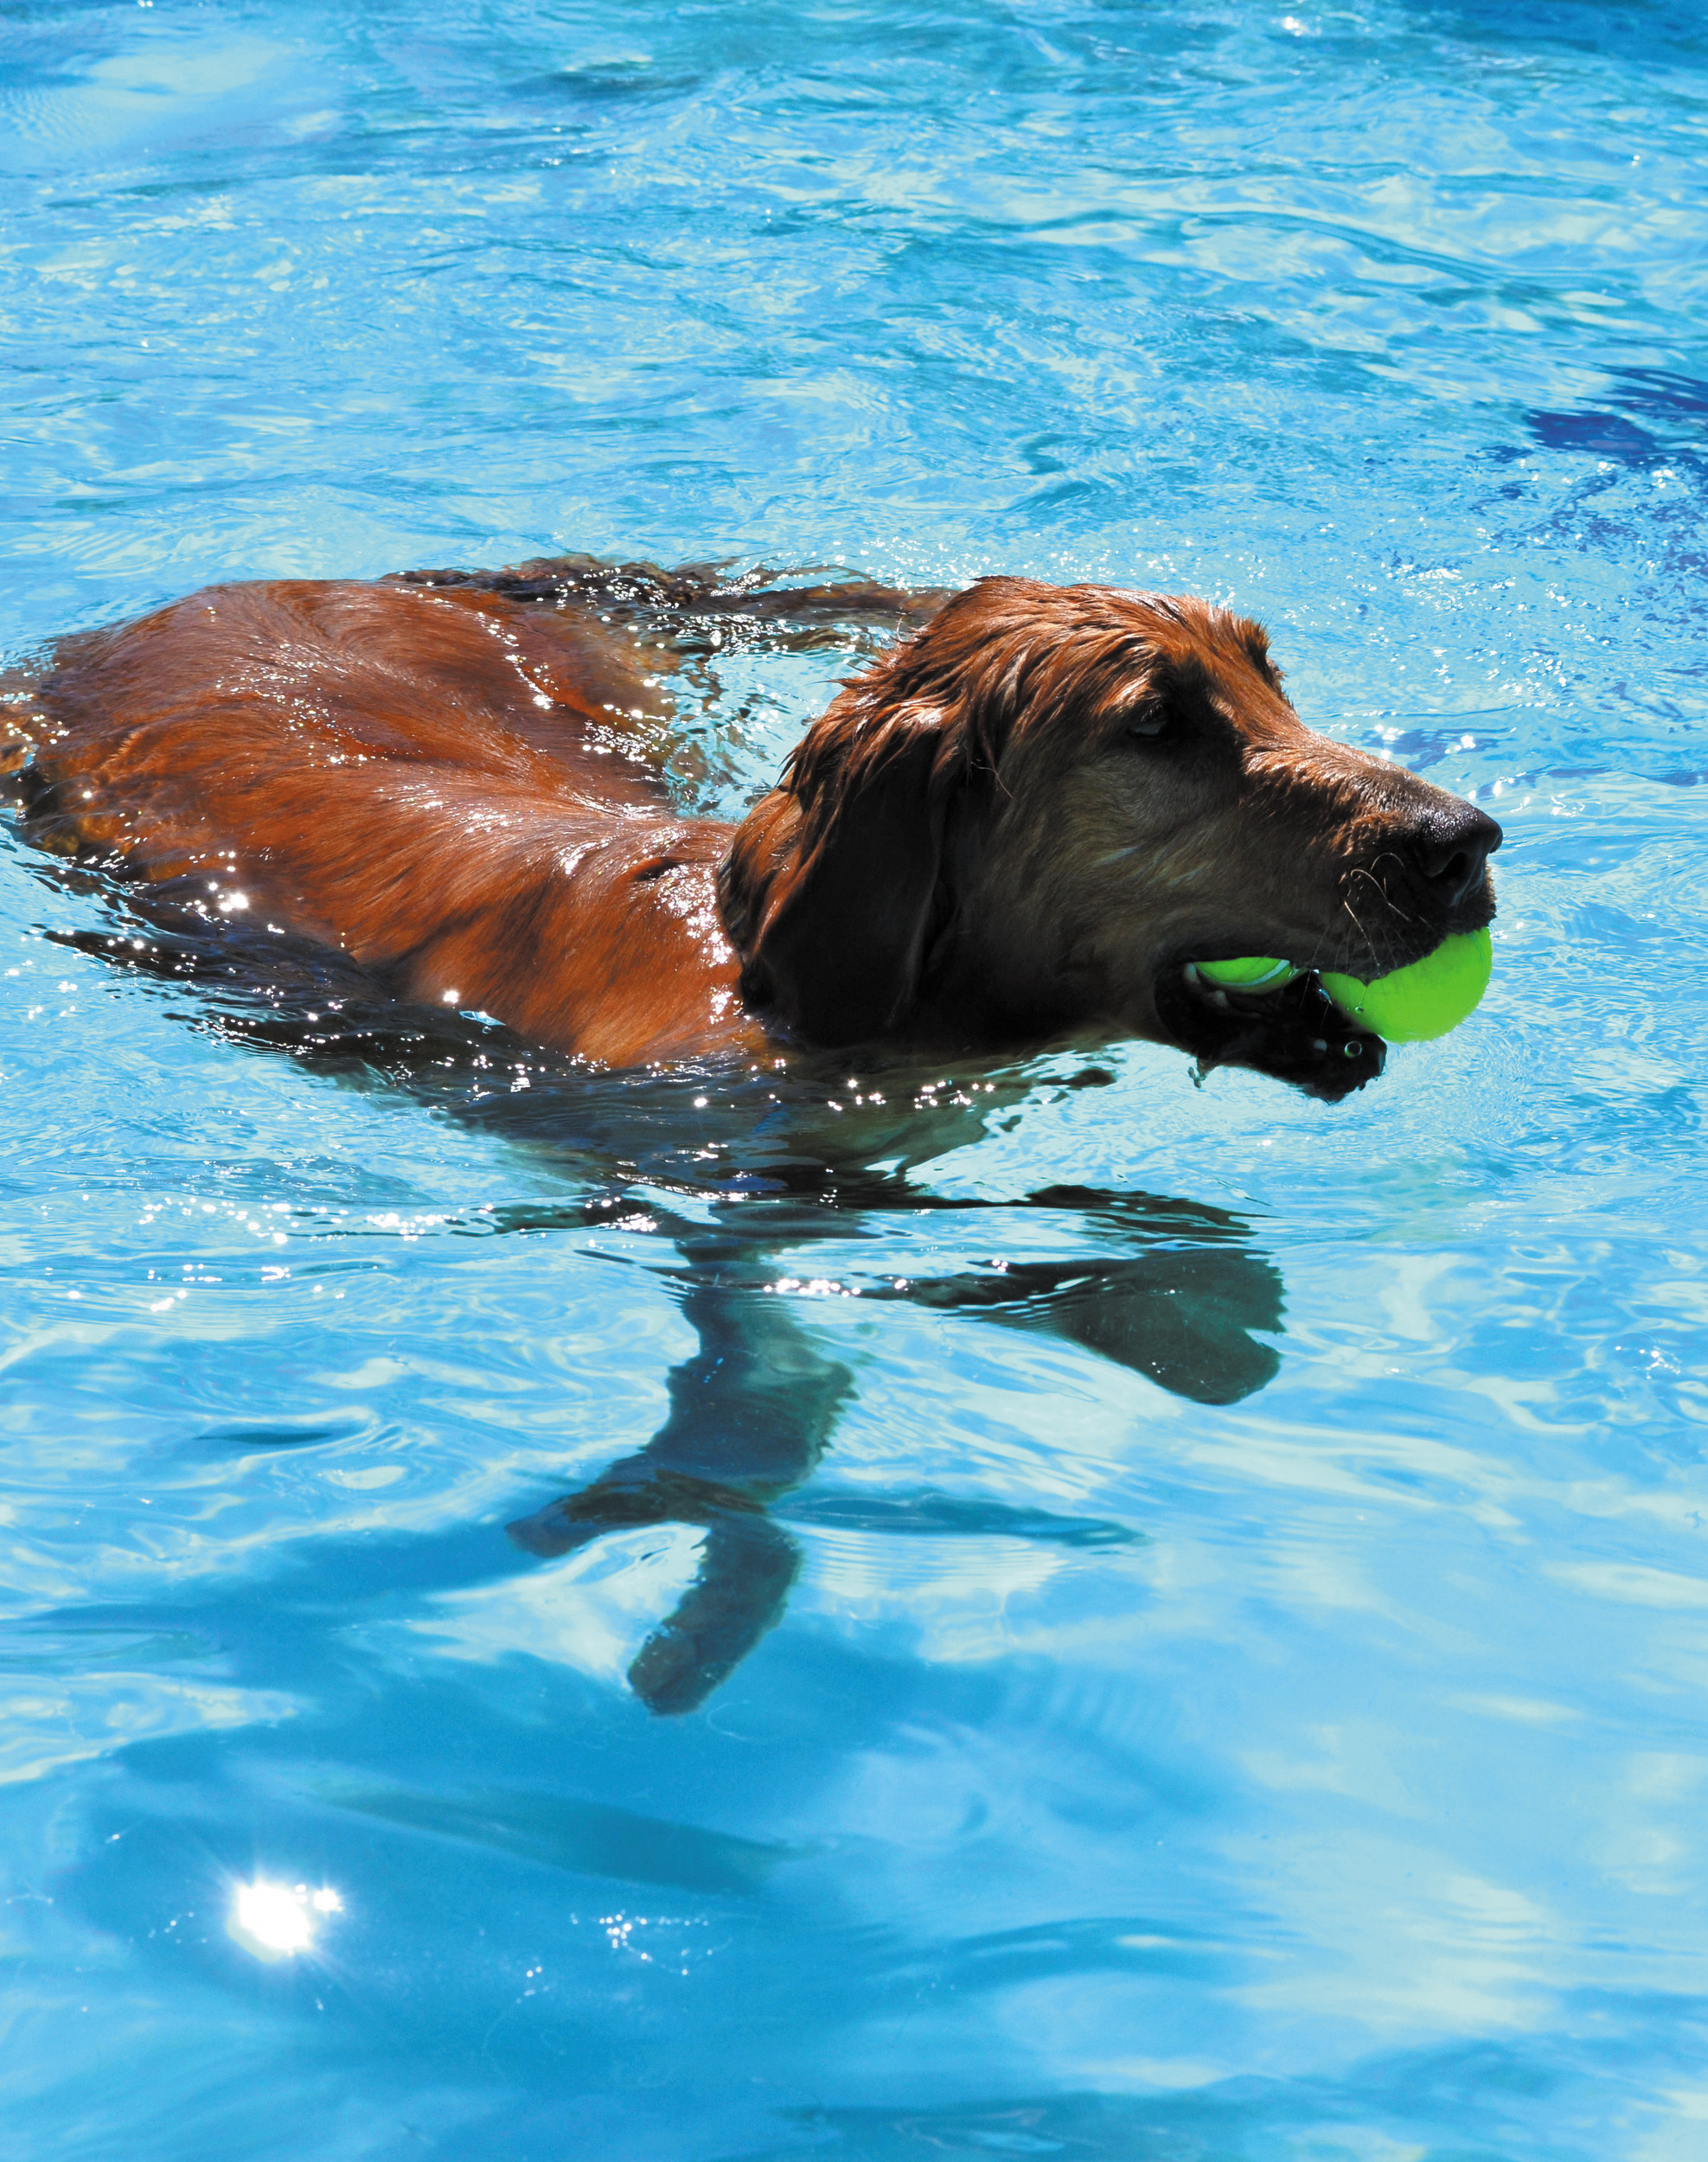 One is never enough for 9-year old, Barney, who caught two tennis balls while wading through the pool.